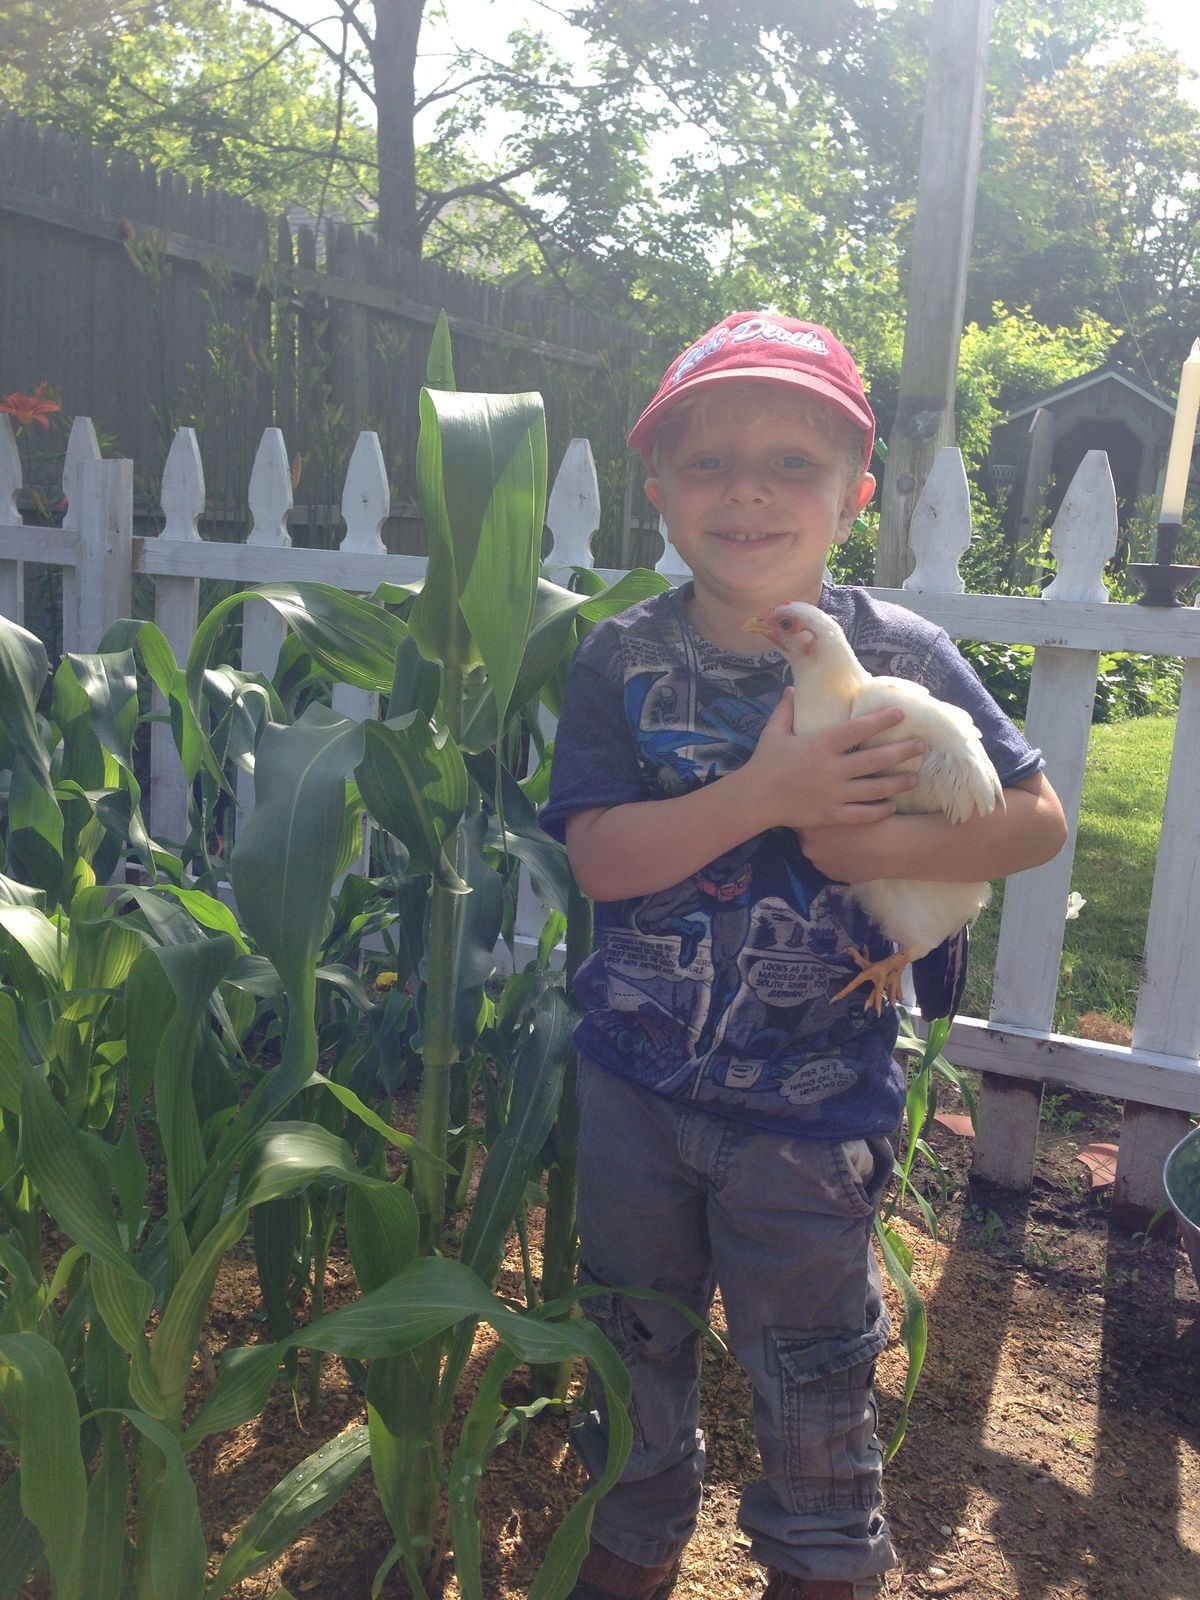 My little farmer, life on a small homestead | To Reap what you sow ...